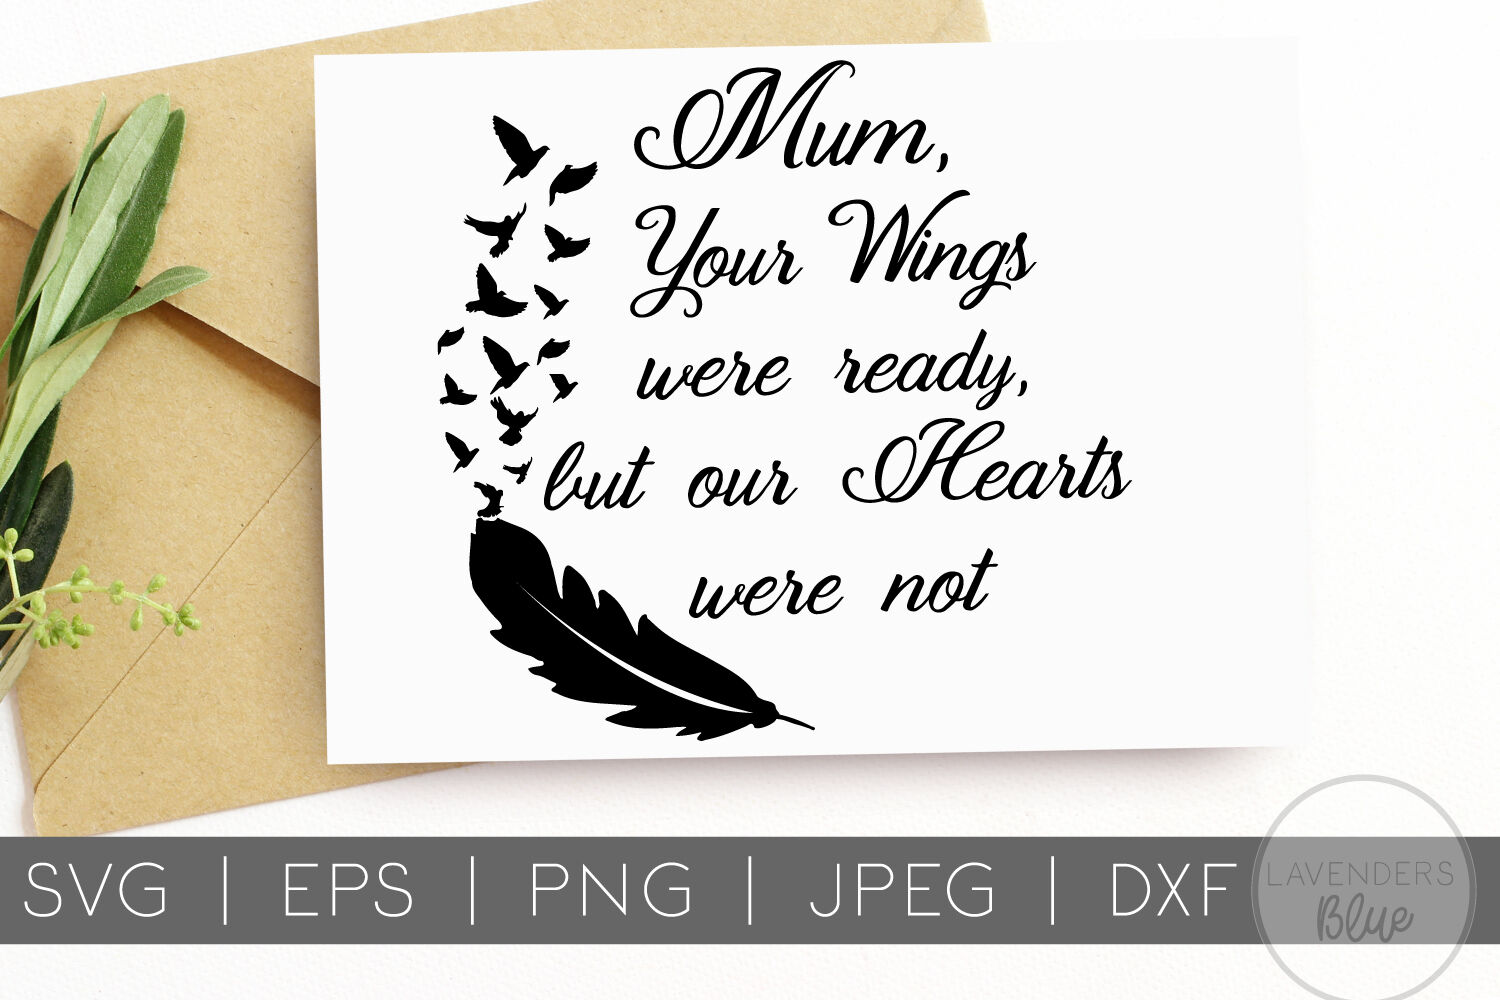 Mum Your Wings Were Ready Svg Quote By Lavender S Blue Design